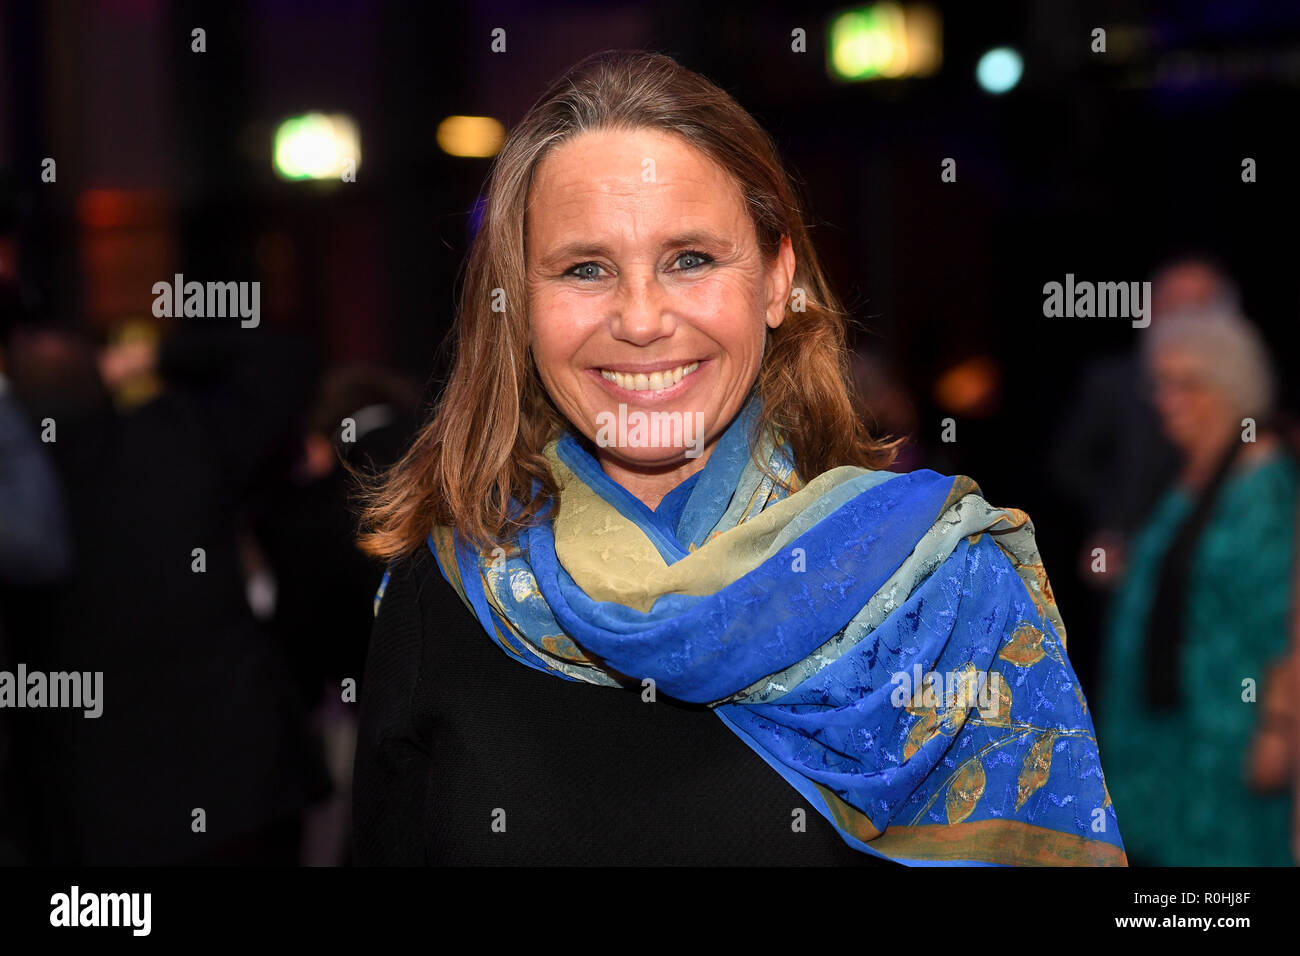 04 November 2018, Bavaria, München: Marie Therese Kroetz-Relin, actress, comes to the Hochschule für Fernsehen und Film (HFF) to receive the German Director's Award Metropolis. Photo: Tobias Hase/dpa - Stock Image